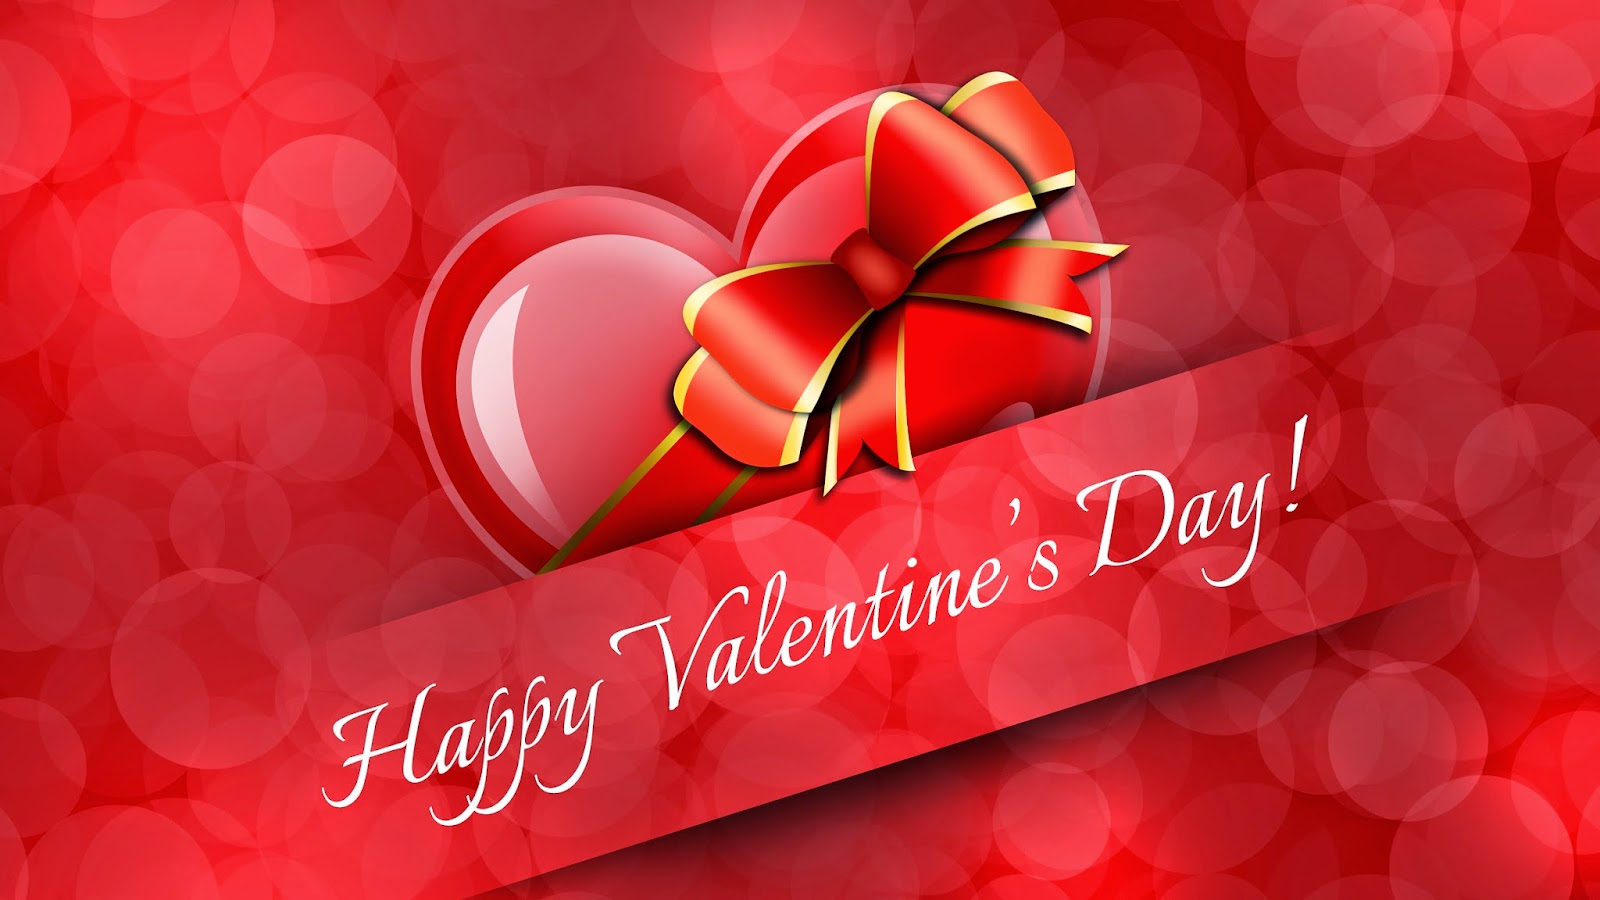 Beautiful happy valentines day images greeting pictures free beautiful happy valentines day images greeting pictures free download holiday wishes kristyandbryce Choice Image